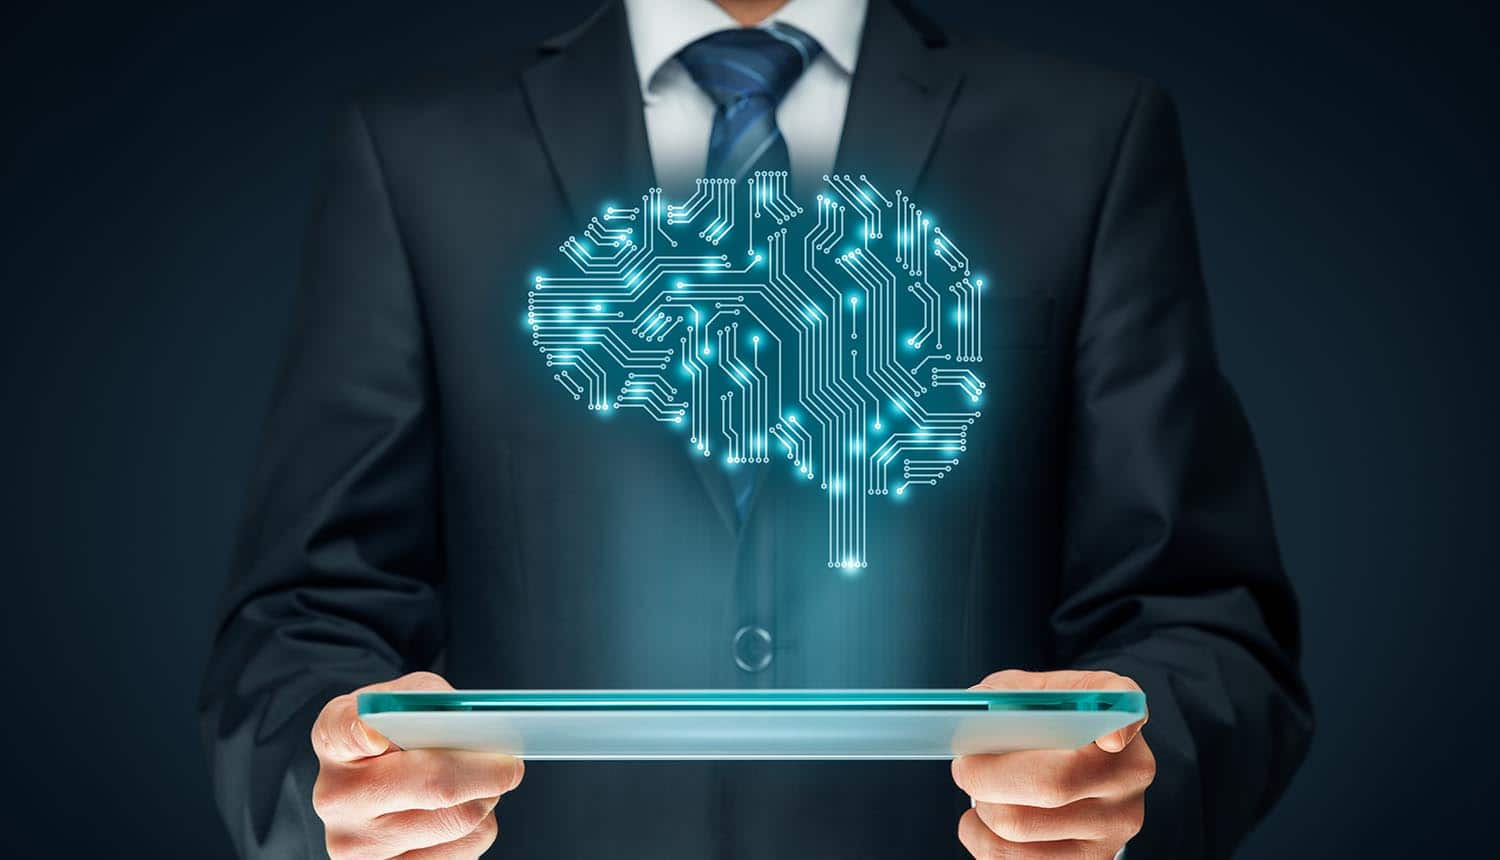 Image of man holding a tablet and an electronic brain projected above showing the concerns of AI and algorithms for EU GDPR compliance